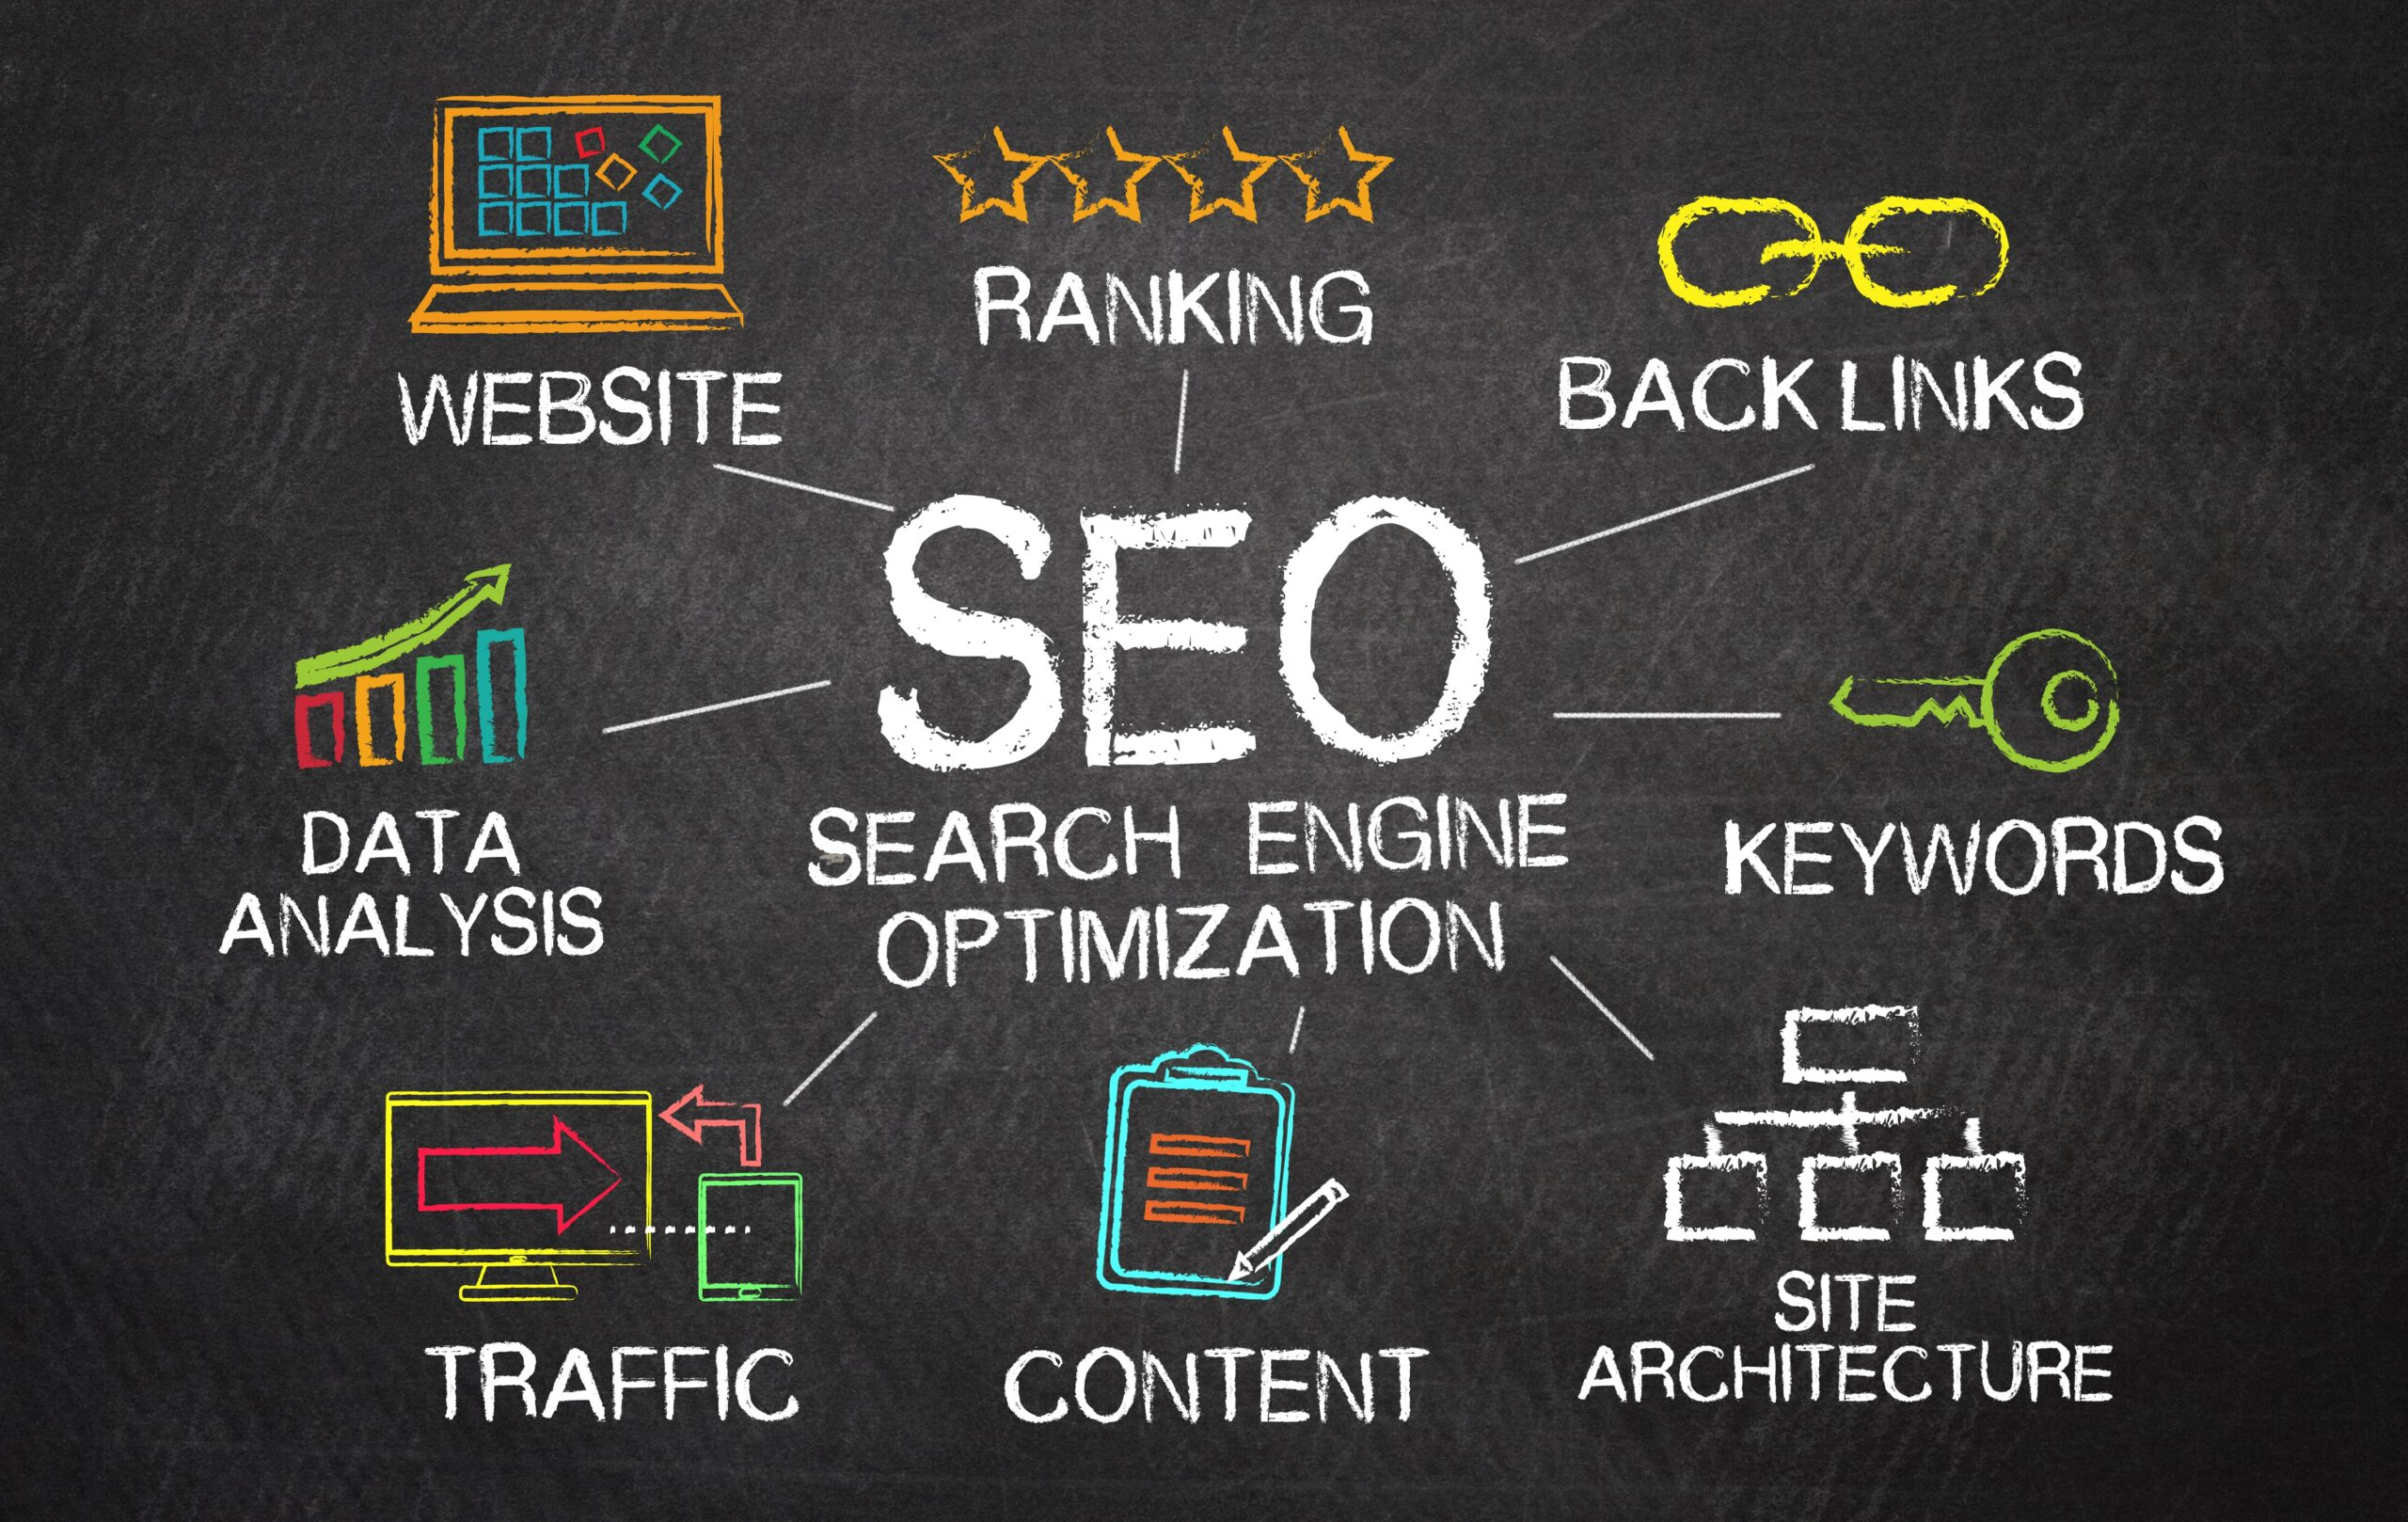 SEO ranking factors for on-page and off-page